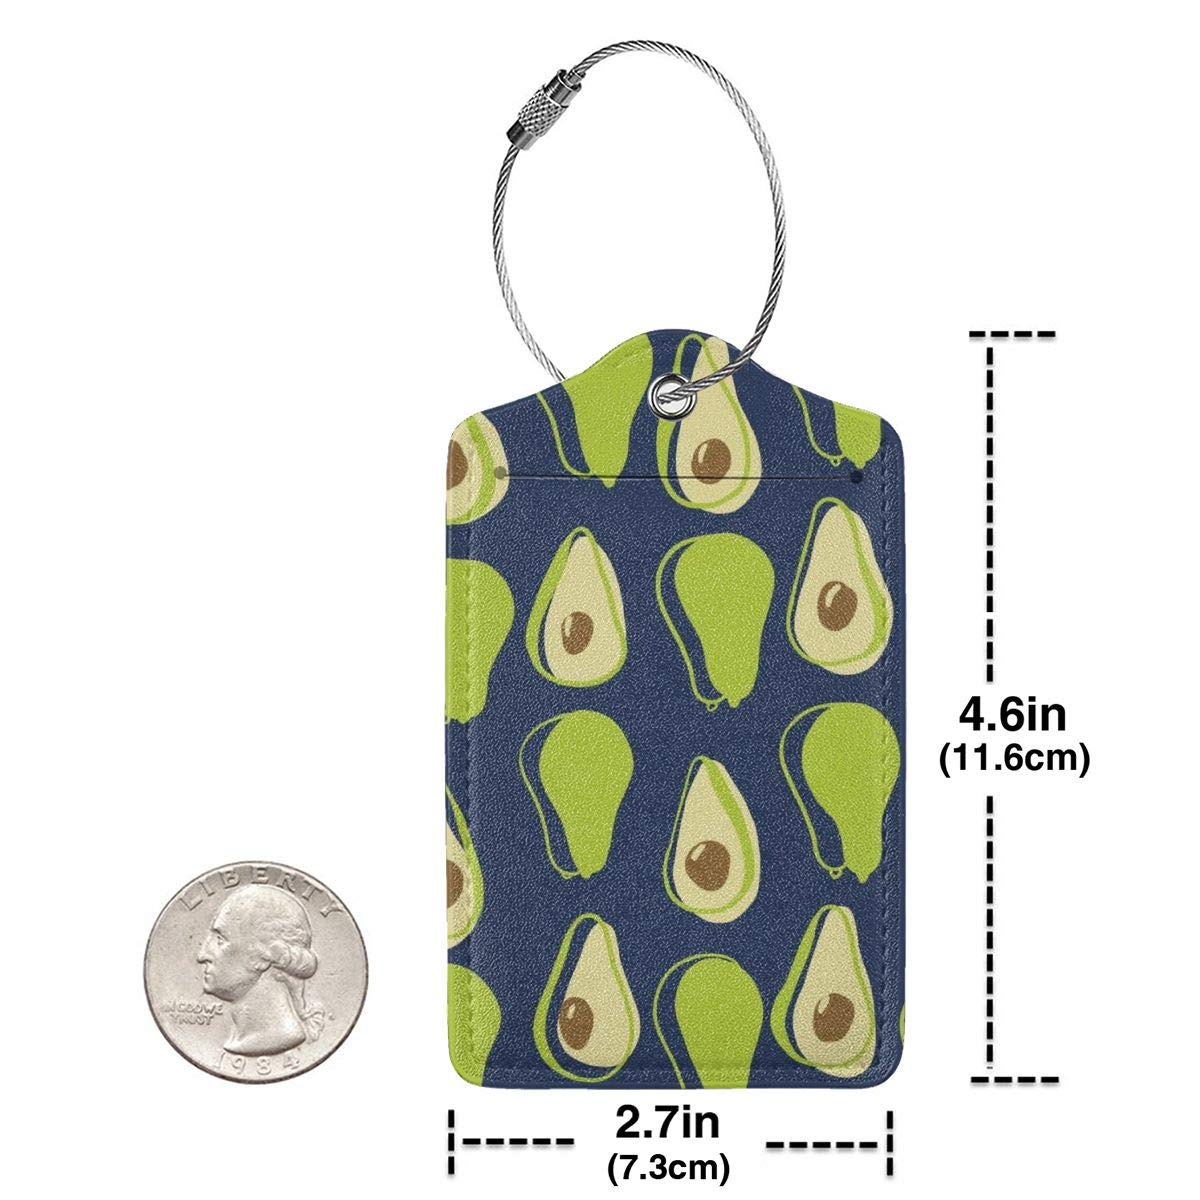 Travel Luggage Tags PU Leather Bag Tags Suitcase Baggage Label Handbag Tag With Full Back Privacy Cover Steel Loops Avocado Ripe Halves Avocado set of 4